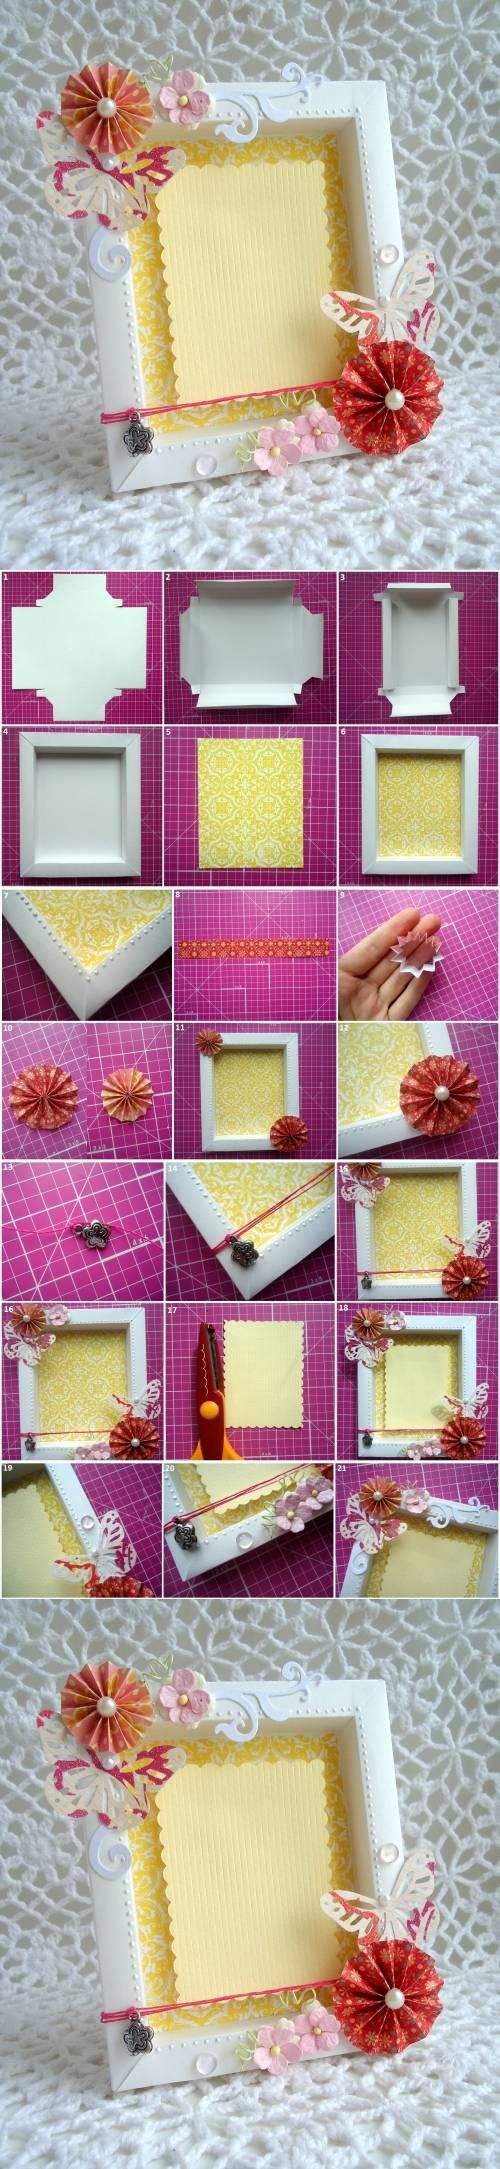 DIY Cute Cardboard Picture Frame | iCreativeIdeas.com Like Us on Facebook ==> https://www.facebook.com/icreativeideas